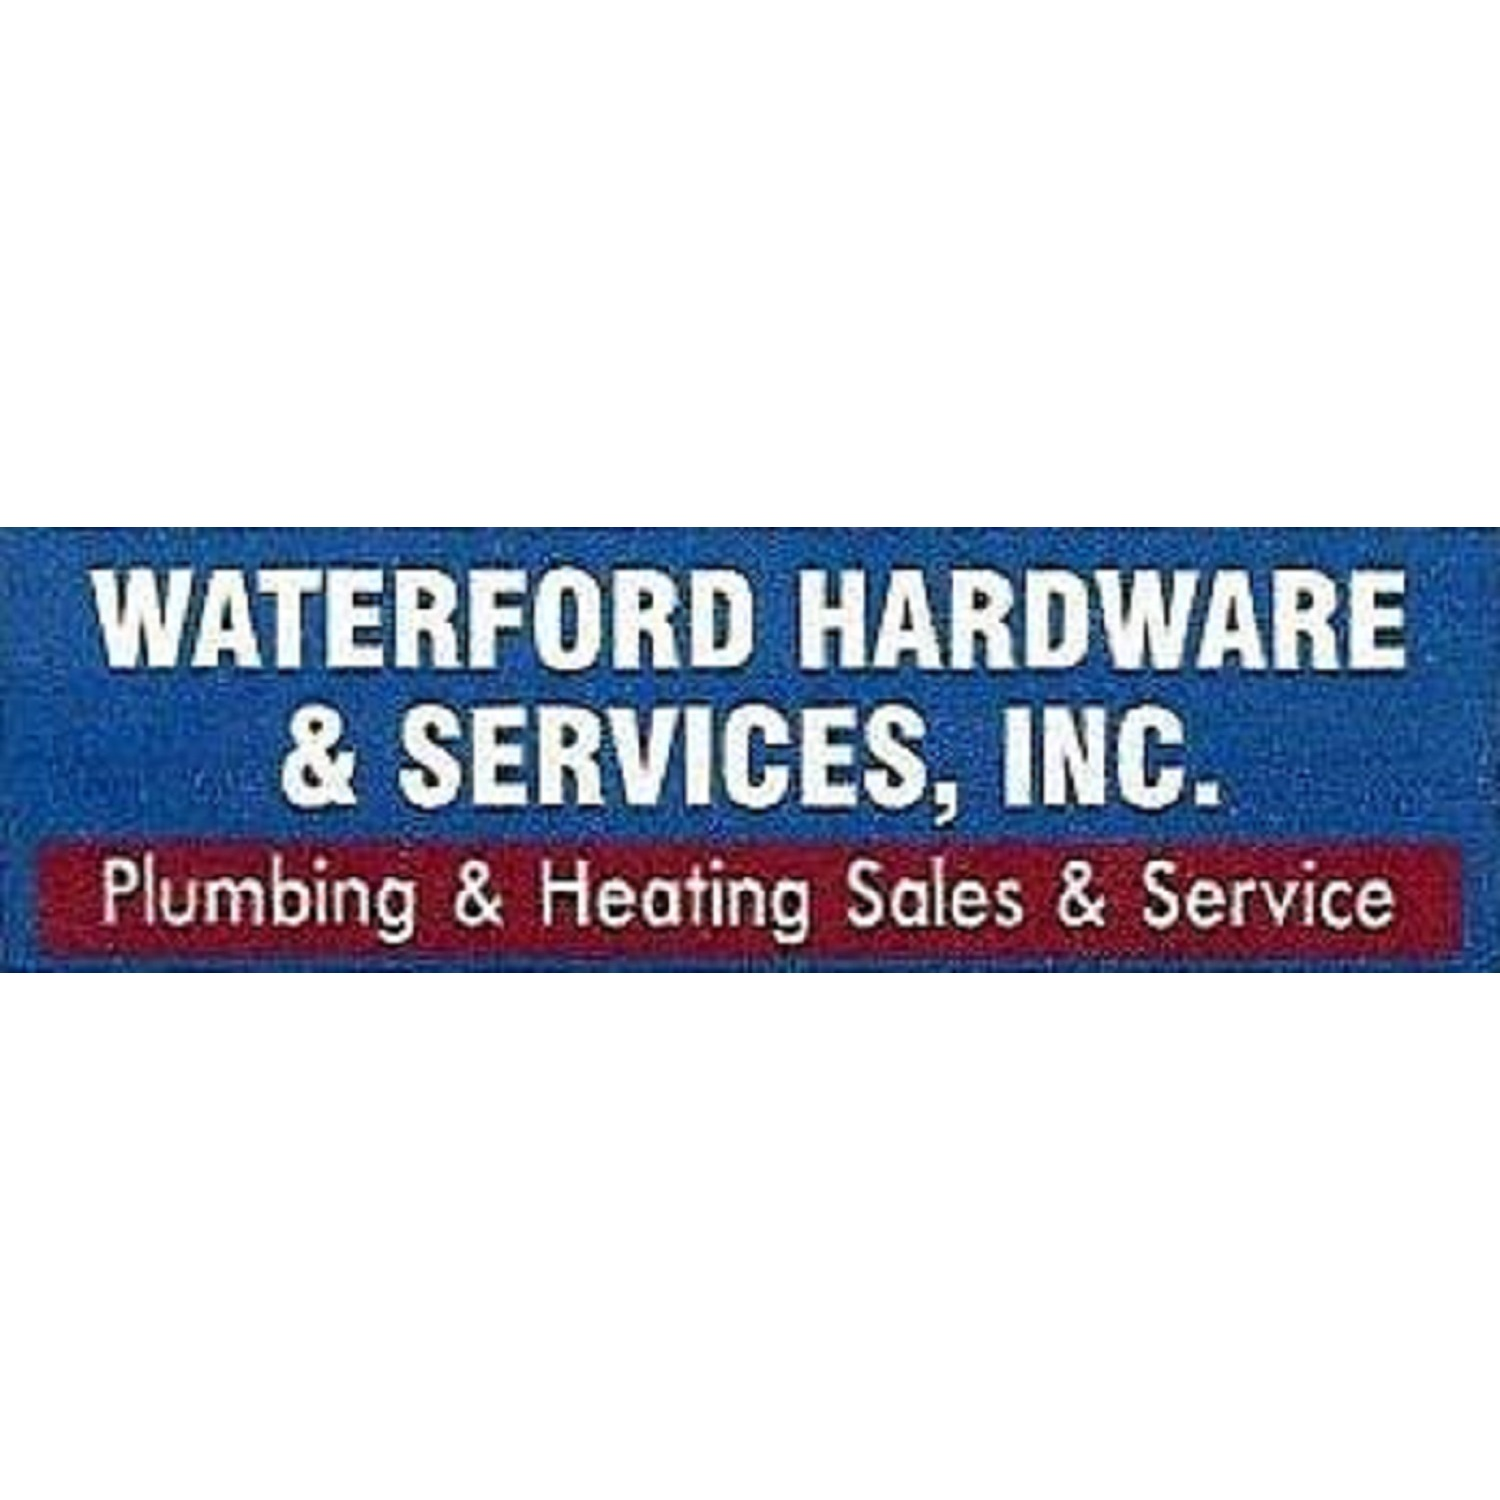 Waterford Hardware & Services, Inc.